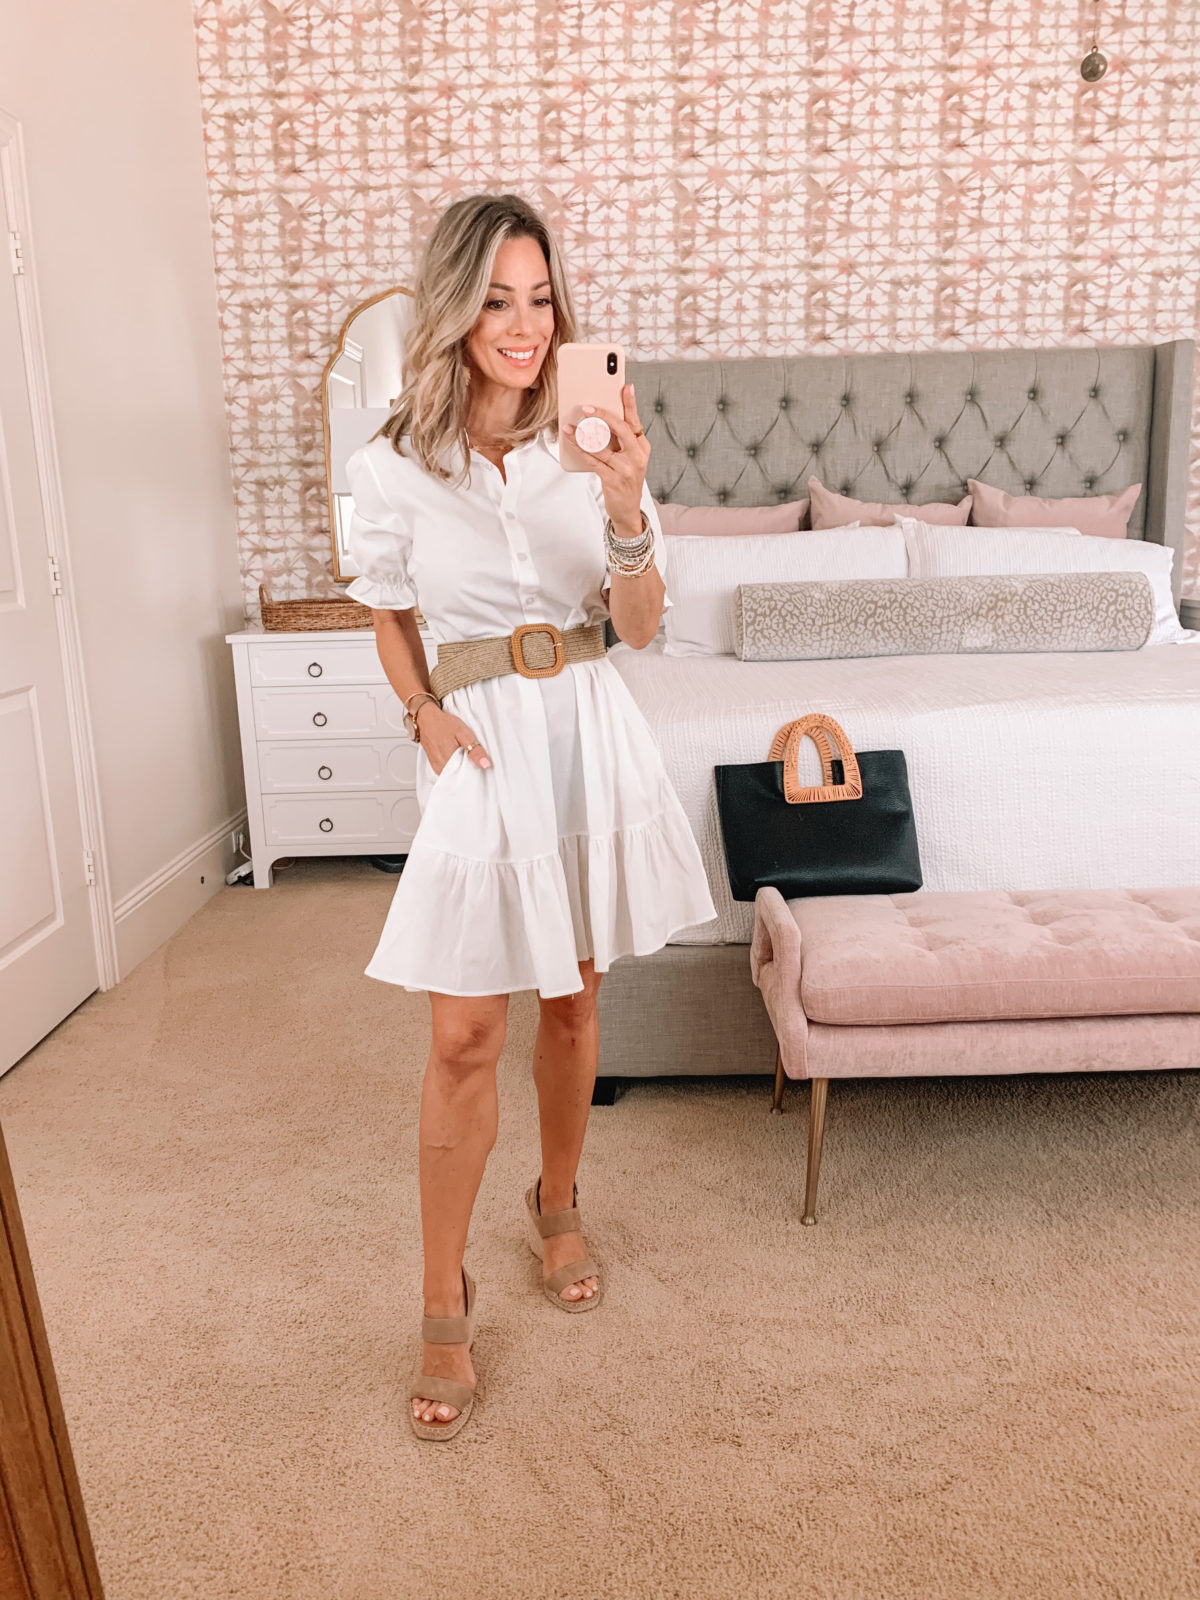 Amazon Fashion Faves, White Shirt Dress and Woven Belt with wedges and tote